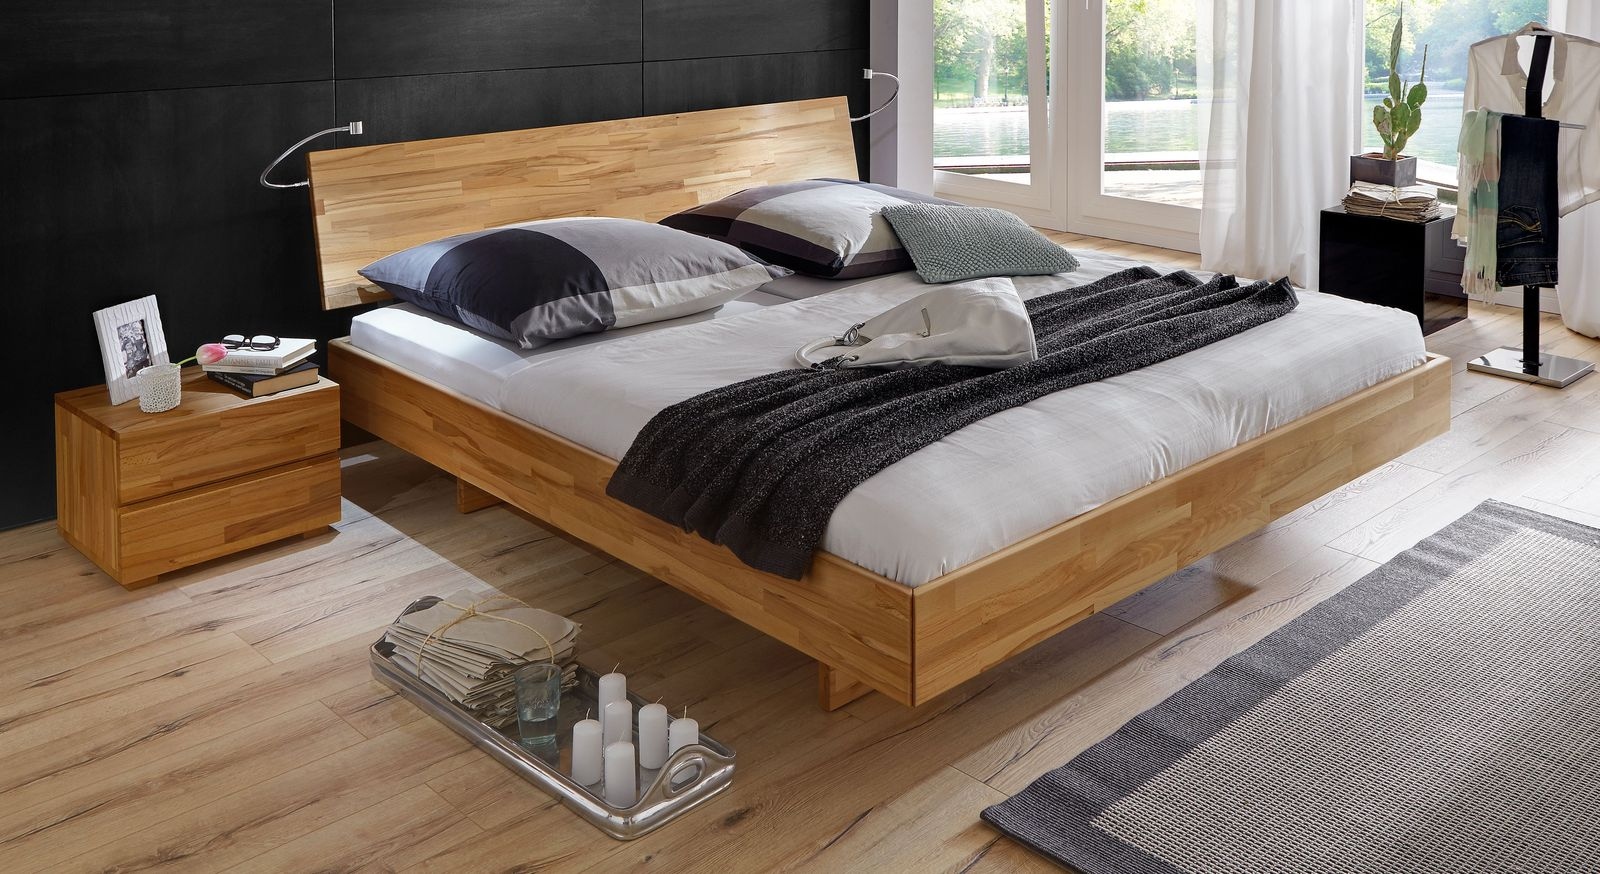 bequemes bett rimini aus hochwertigem buchenholz. Black Bedroom Furniture Sets. Home Design Ideas